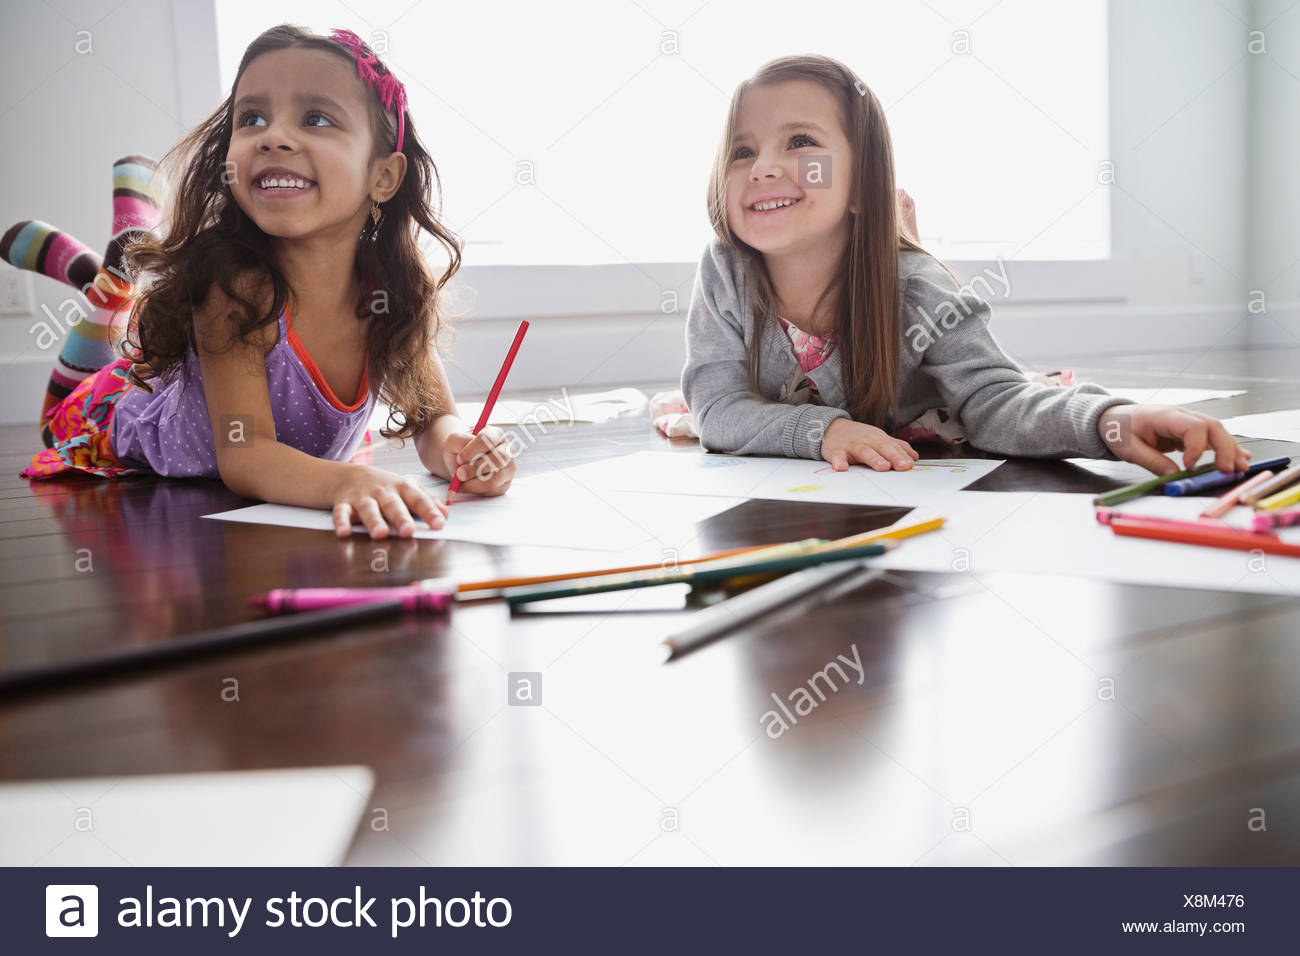 Smiling girls lying on floor coloring at home - Stock Image